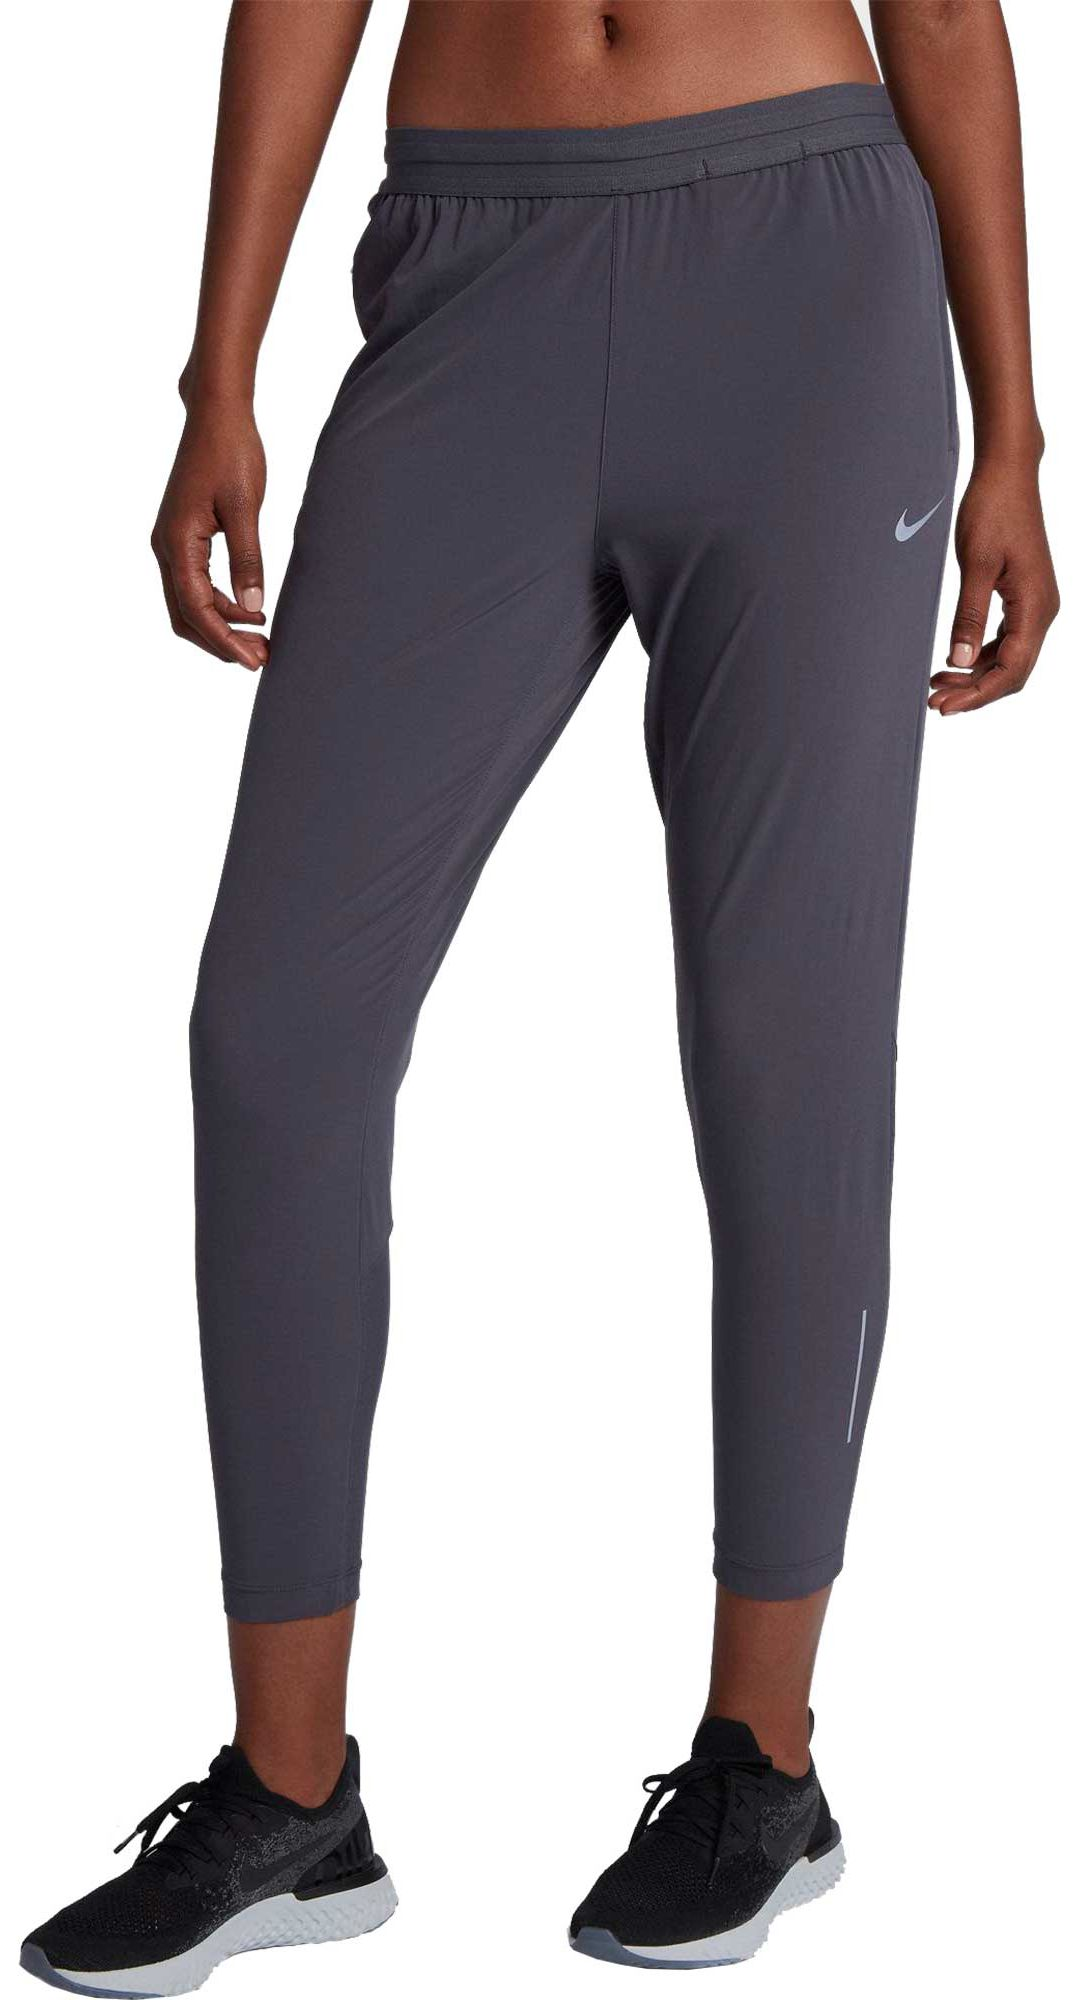 33a576f2 Nike Women's Essential 7/8 Running Pants | DICK'S Sporting Goods